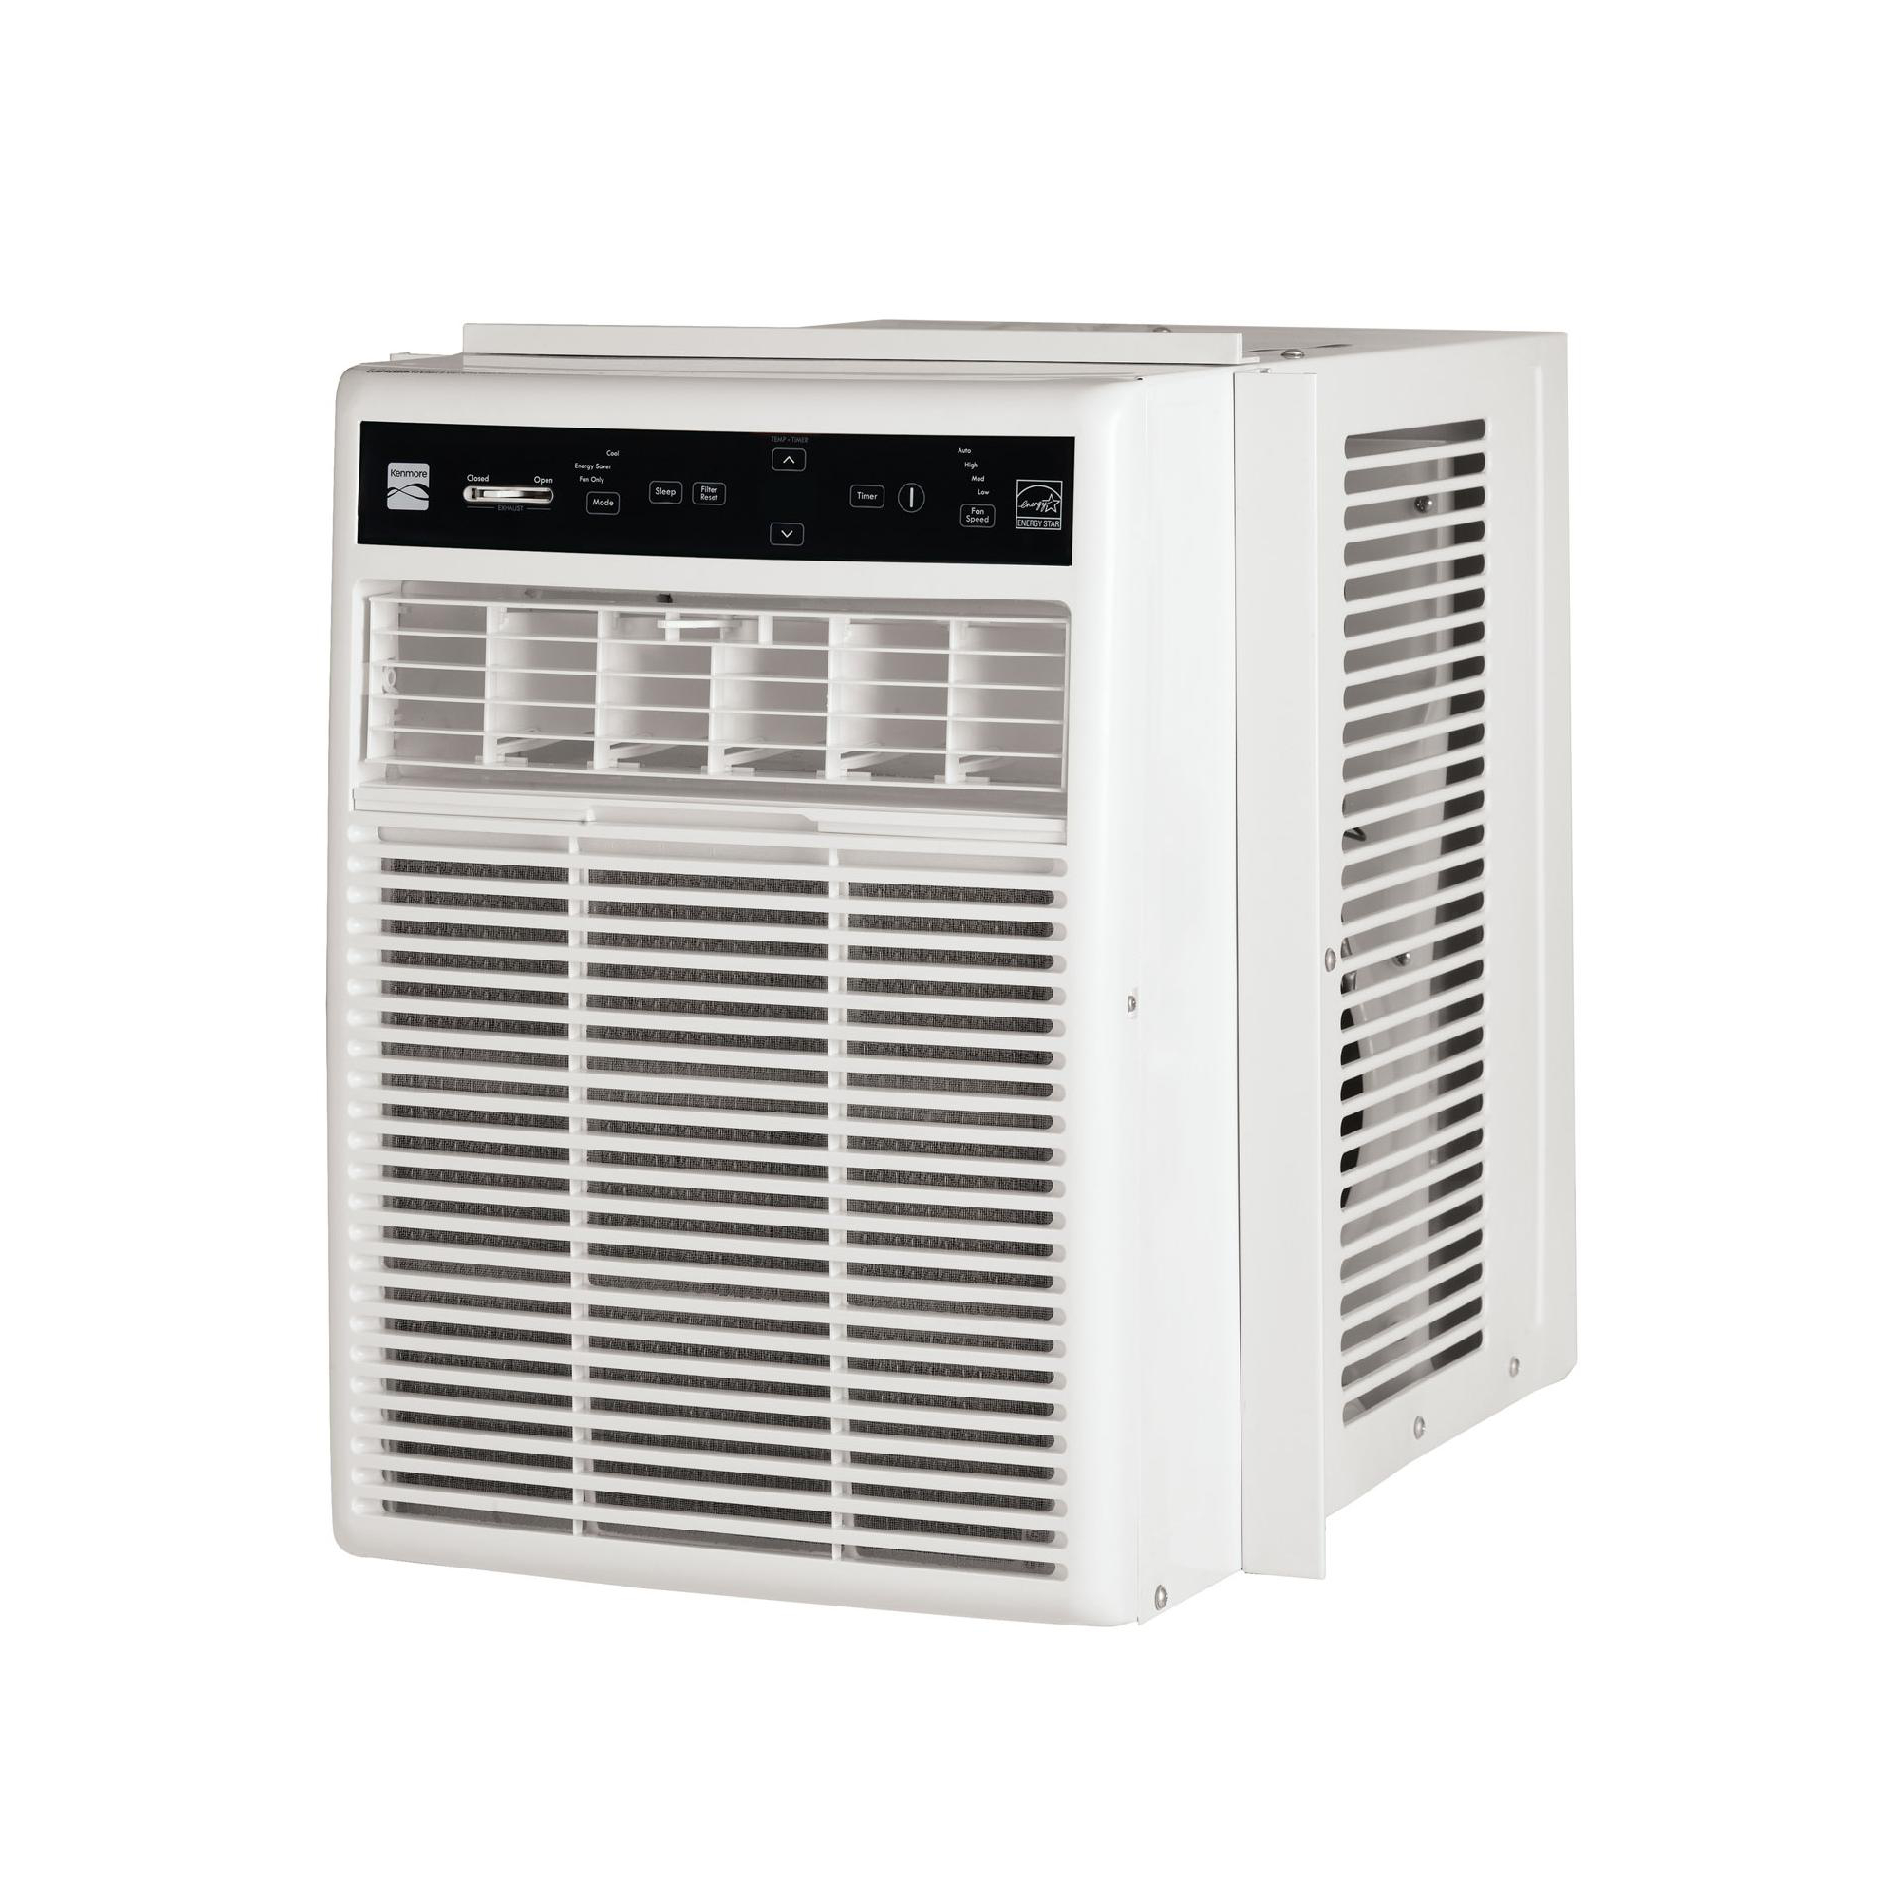 Kenmore 6 000 BTU Room Air Conditioner